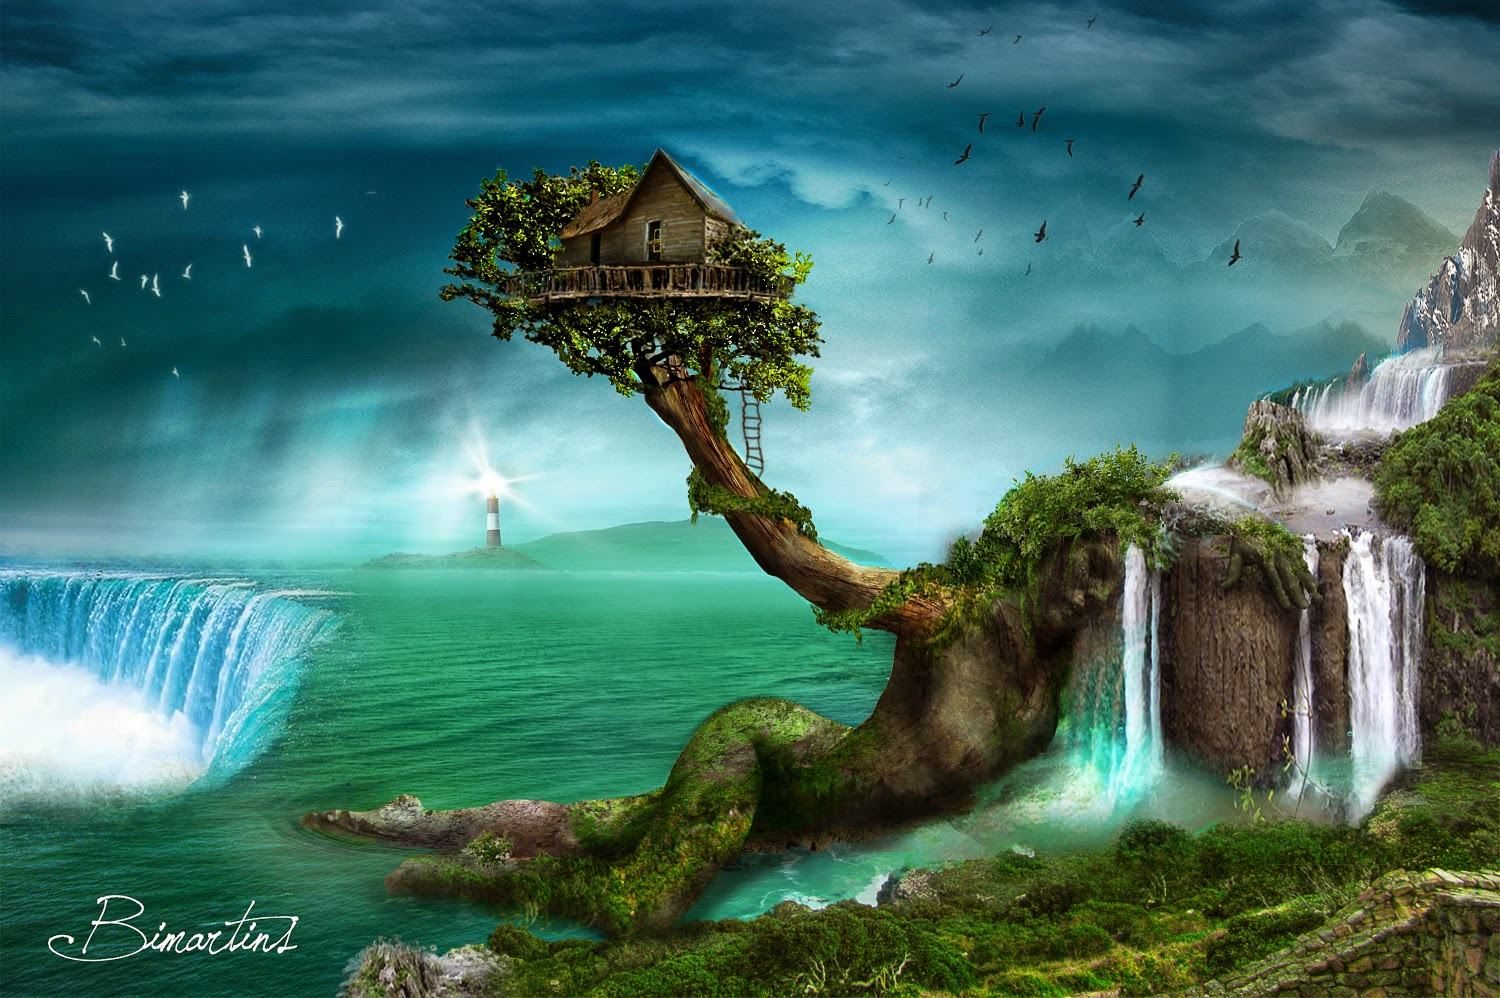 Beautiful Tree House fantasy fairy tale images pictures HD photos